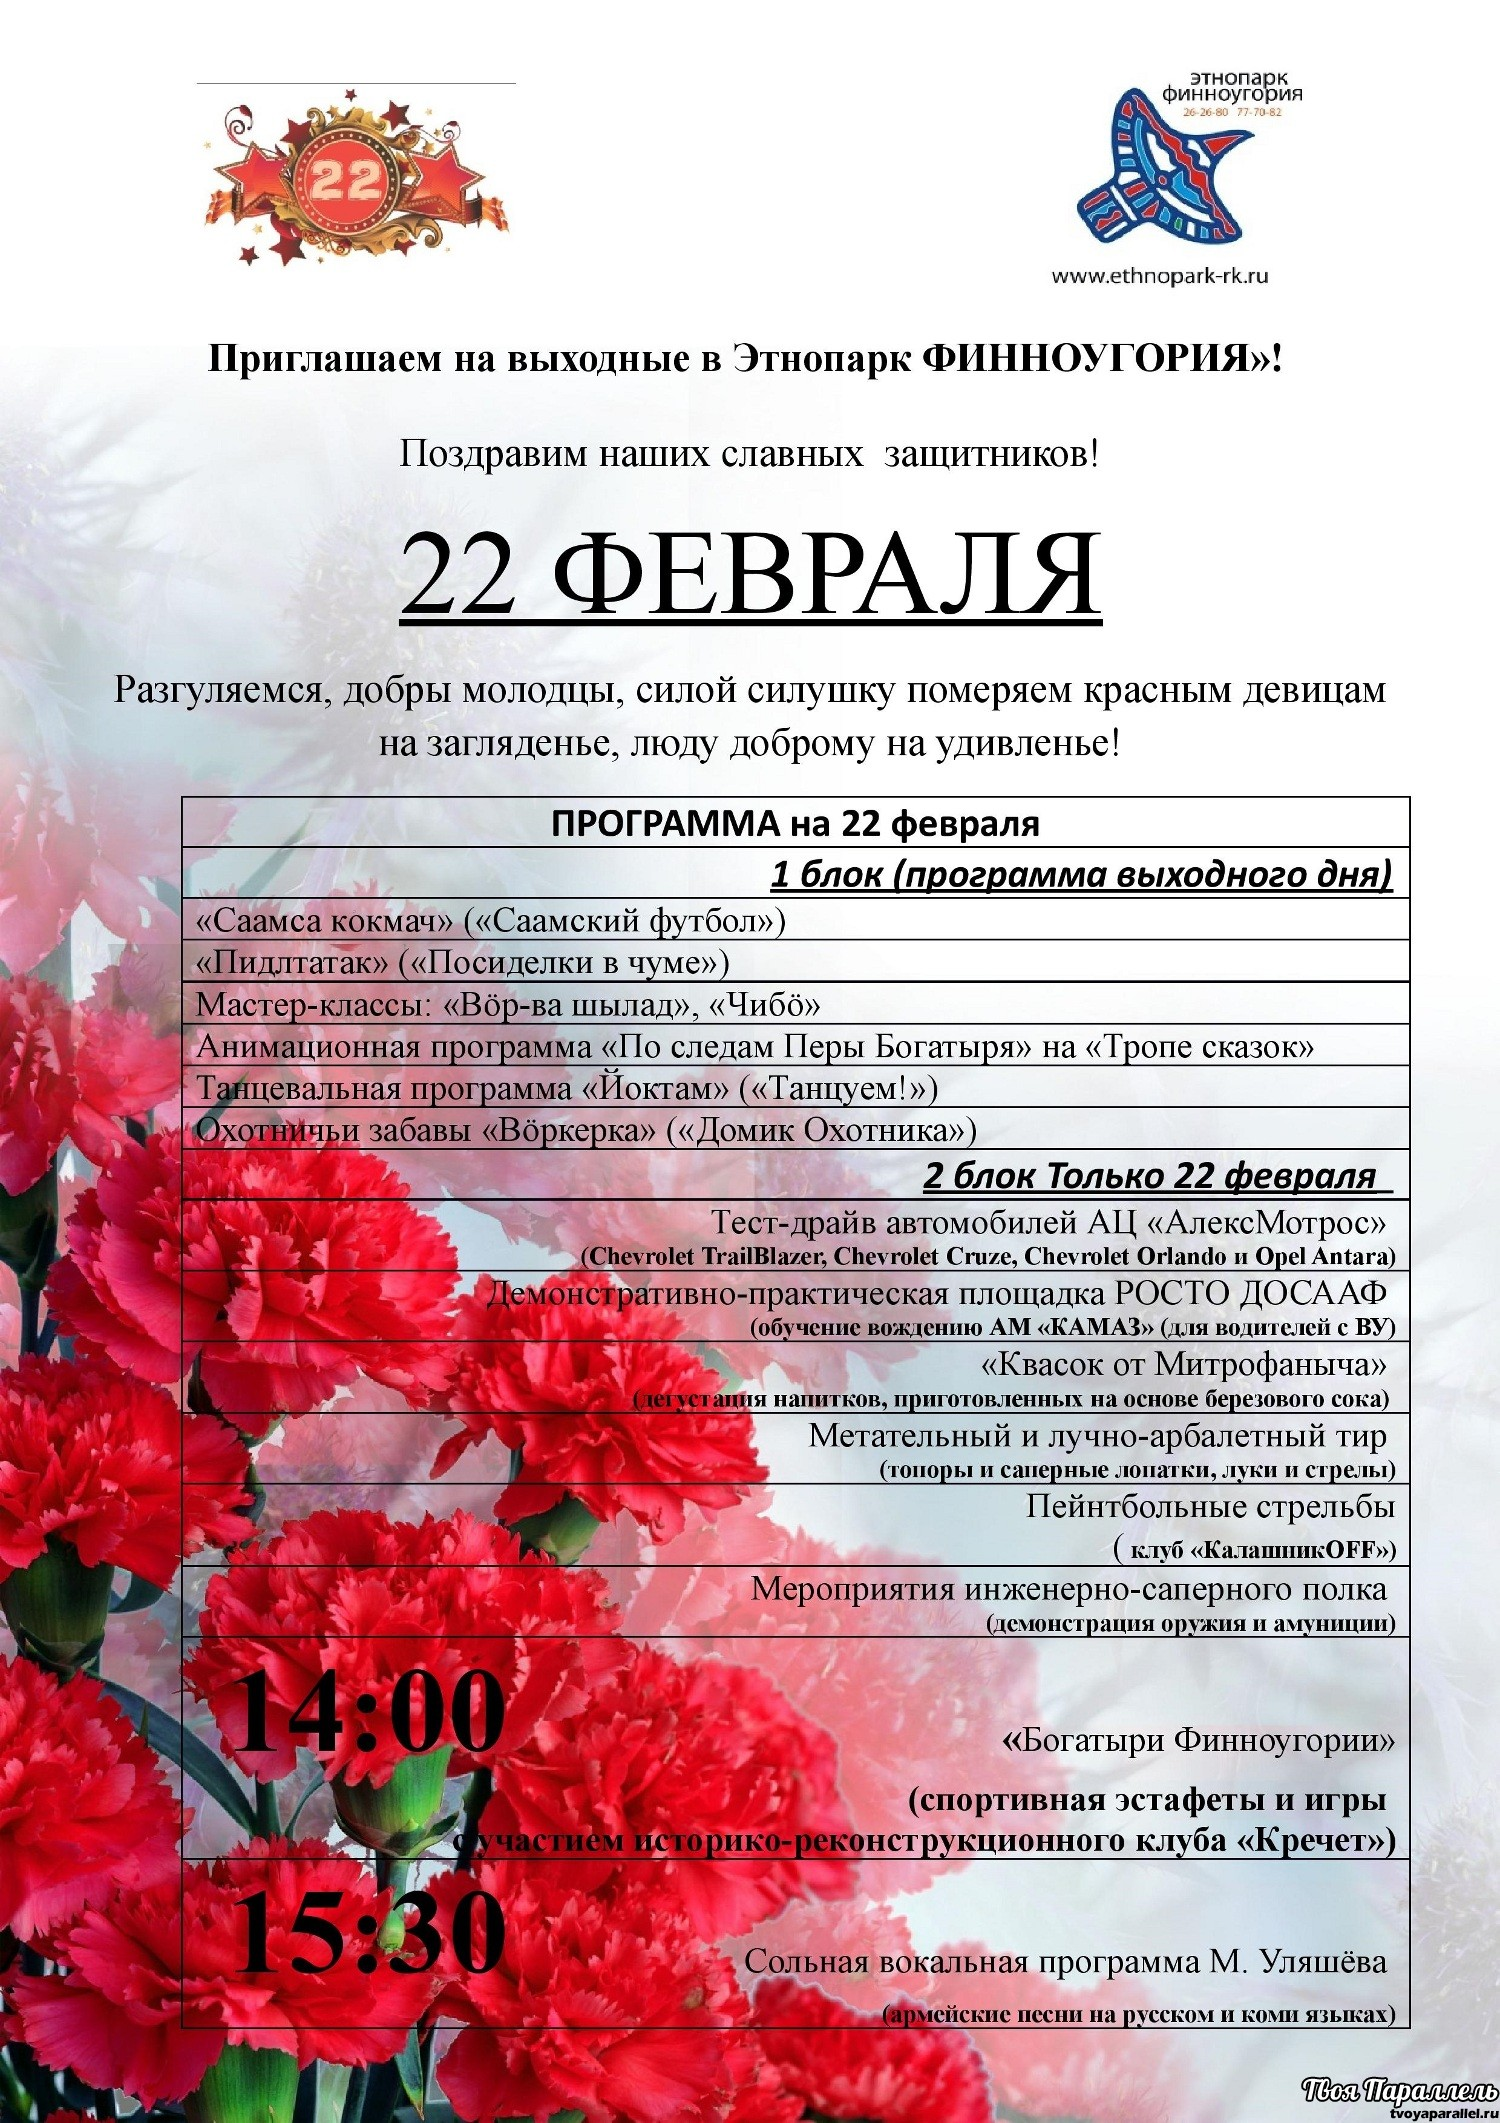 афиша-page-001